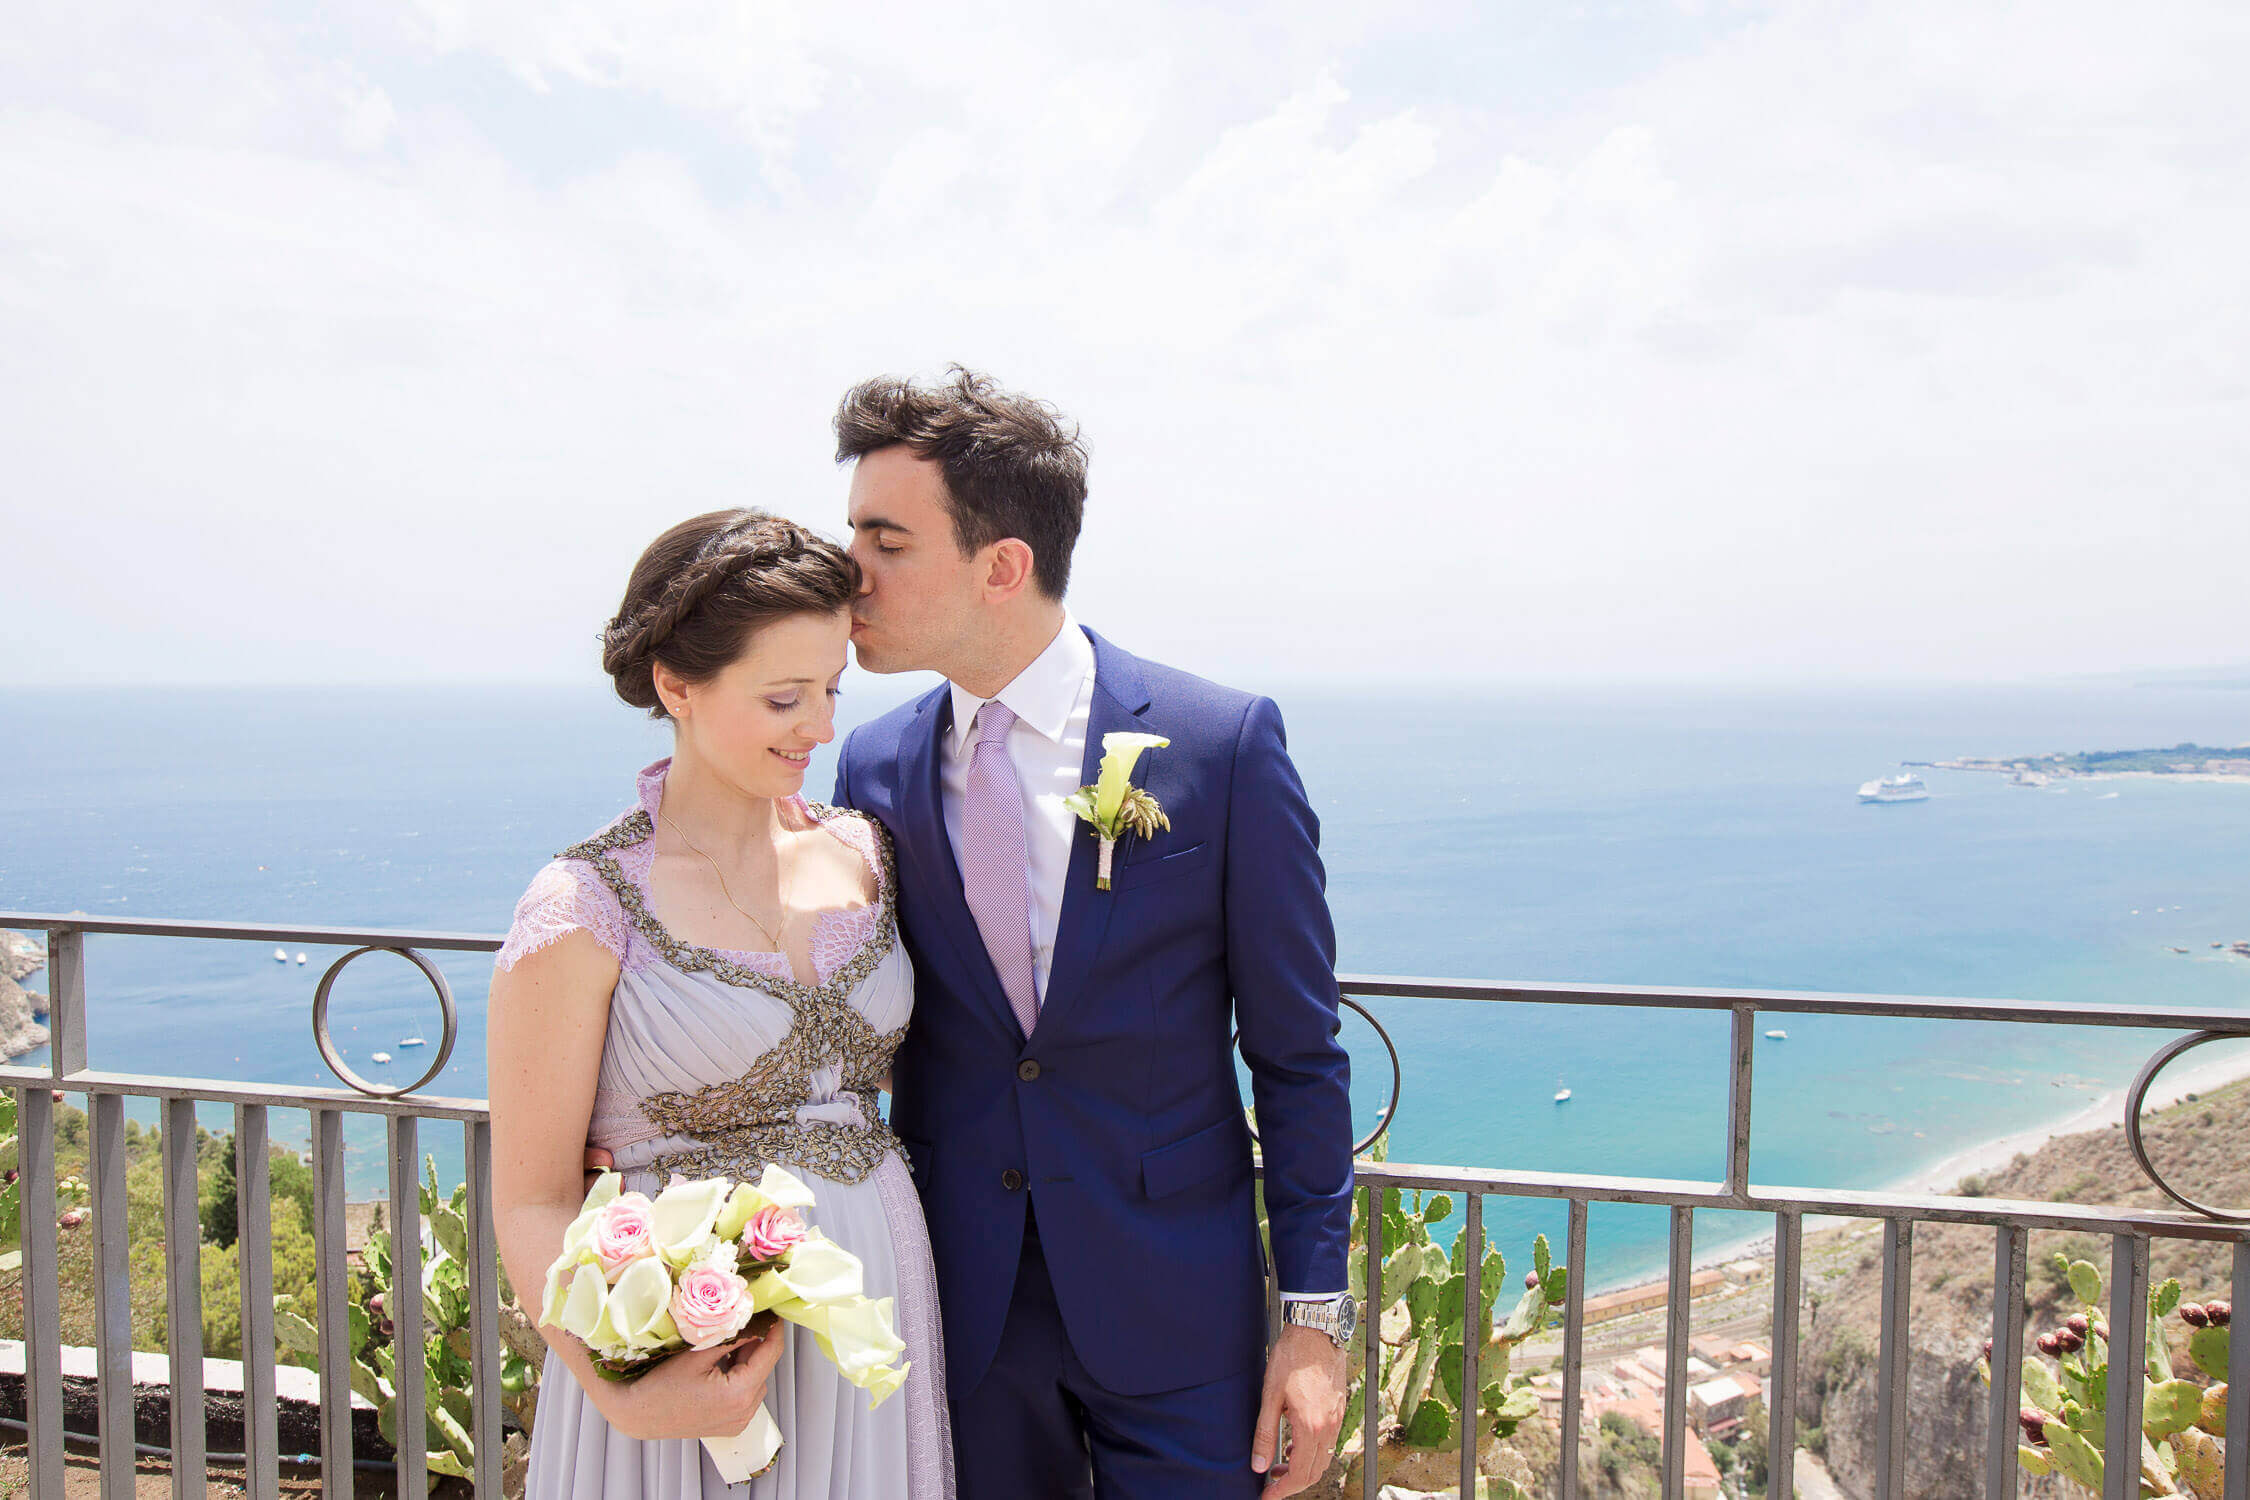 Spouses to the garden of Taormina overlooking the sea, photos by marriage of Nino Lombardo